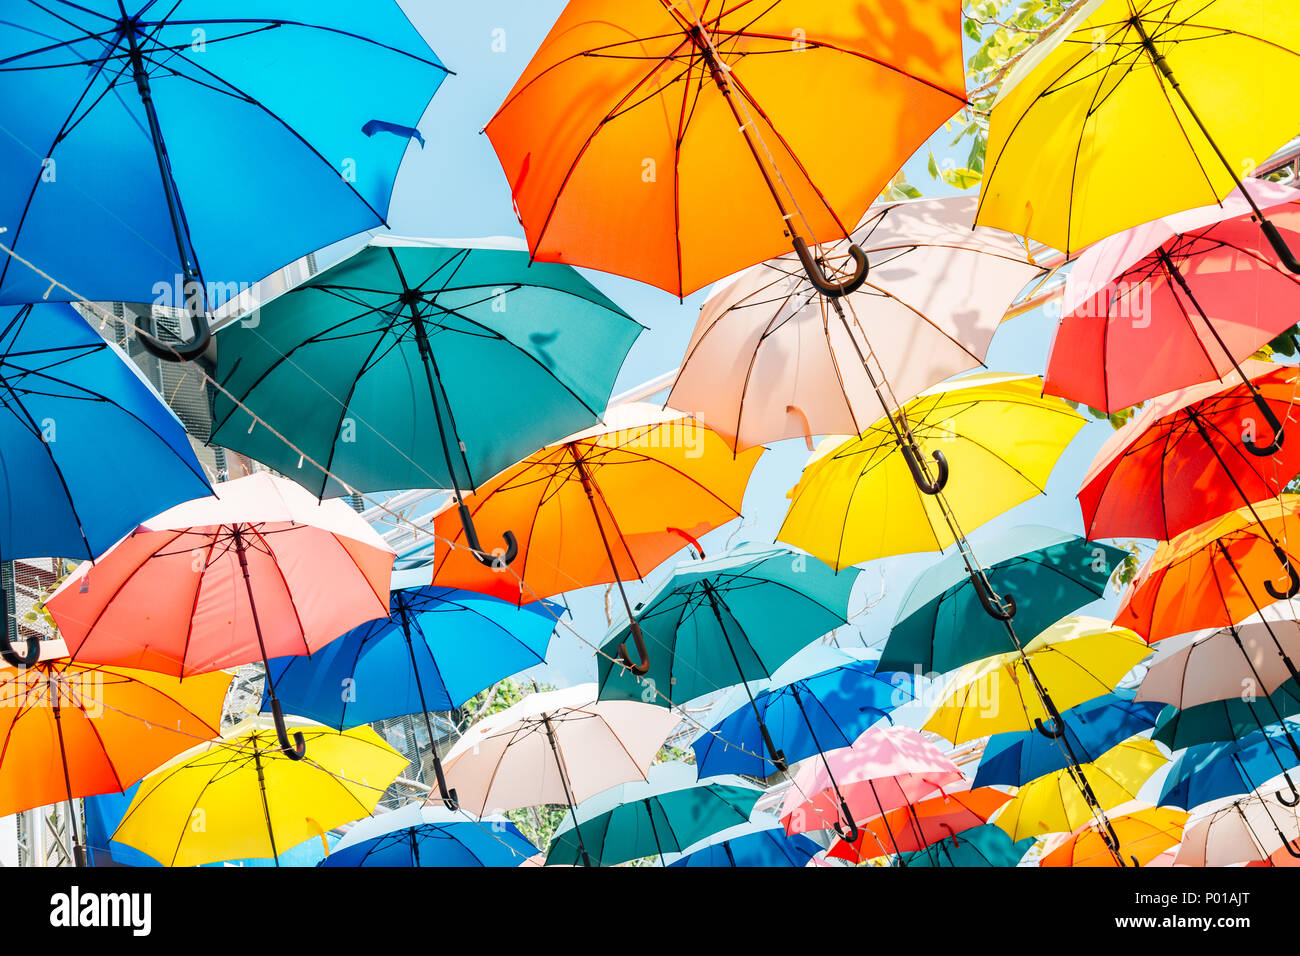 Colorful umbrella background in Taichung, Taiwan - Stock Image